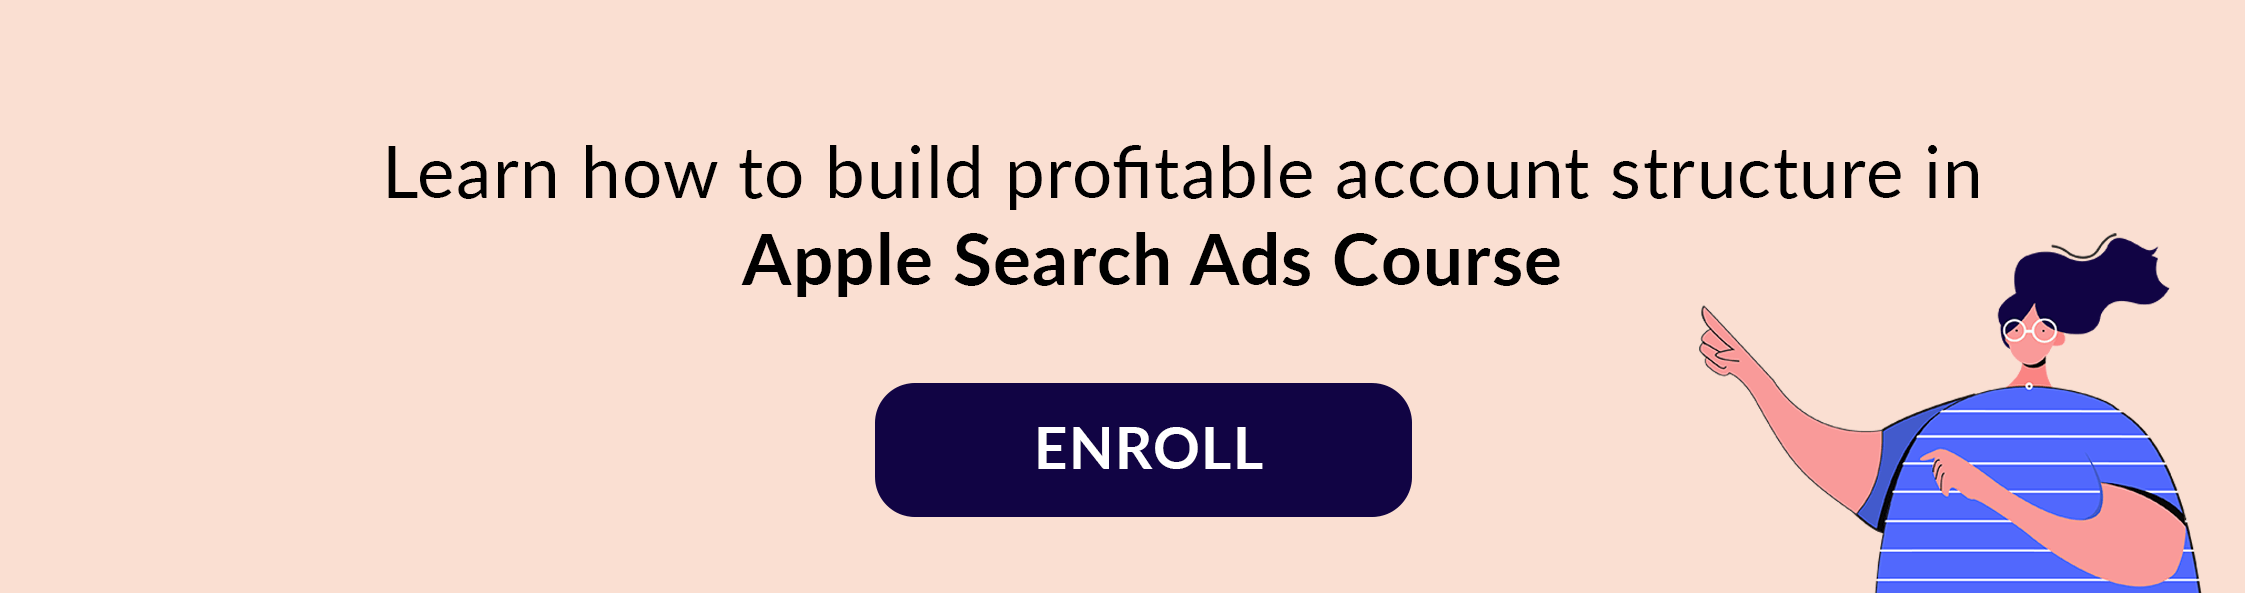 learn Apple Search Ads account structuring